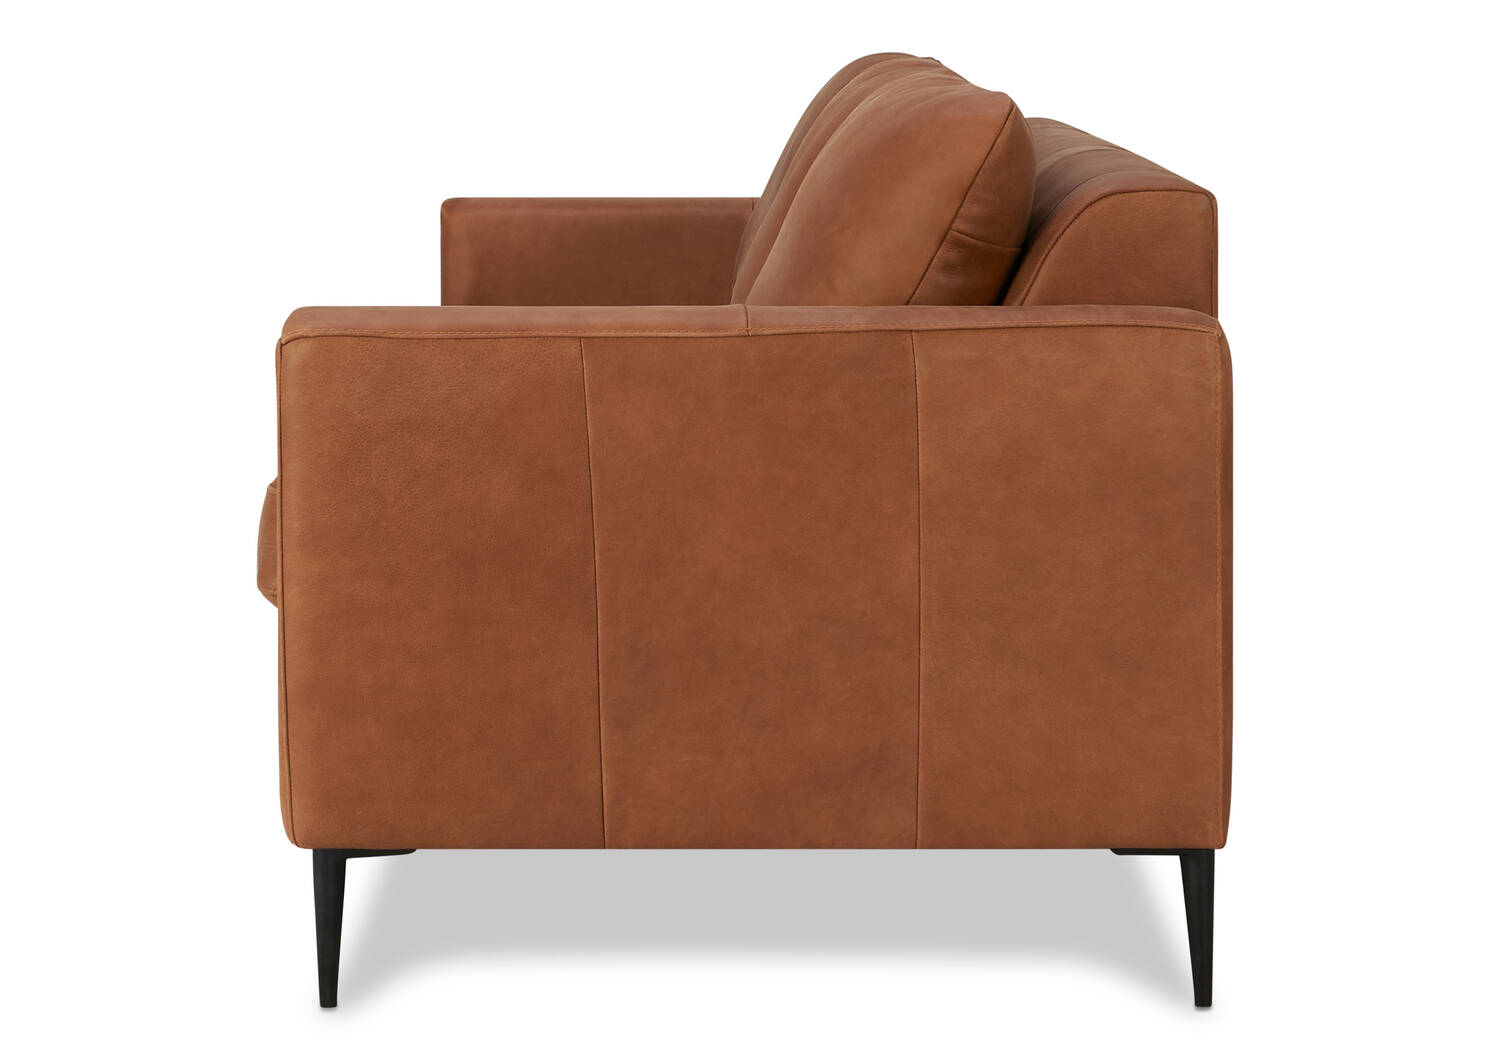 Lucca Leather Sofa -Attica Cinnamon